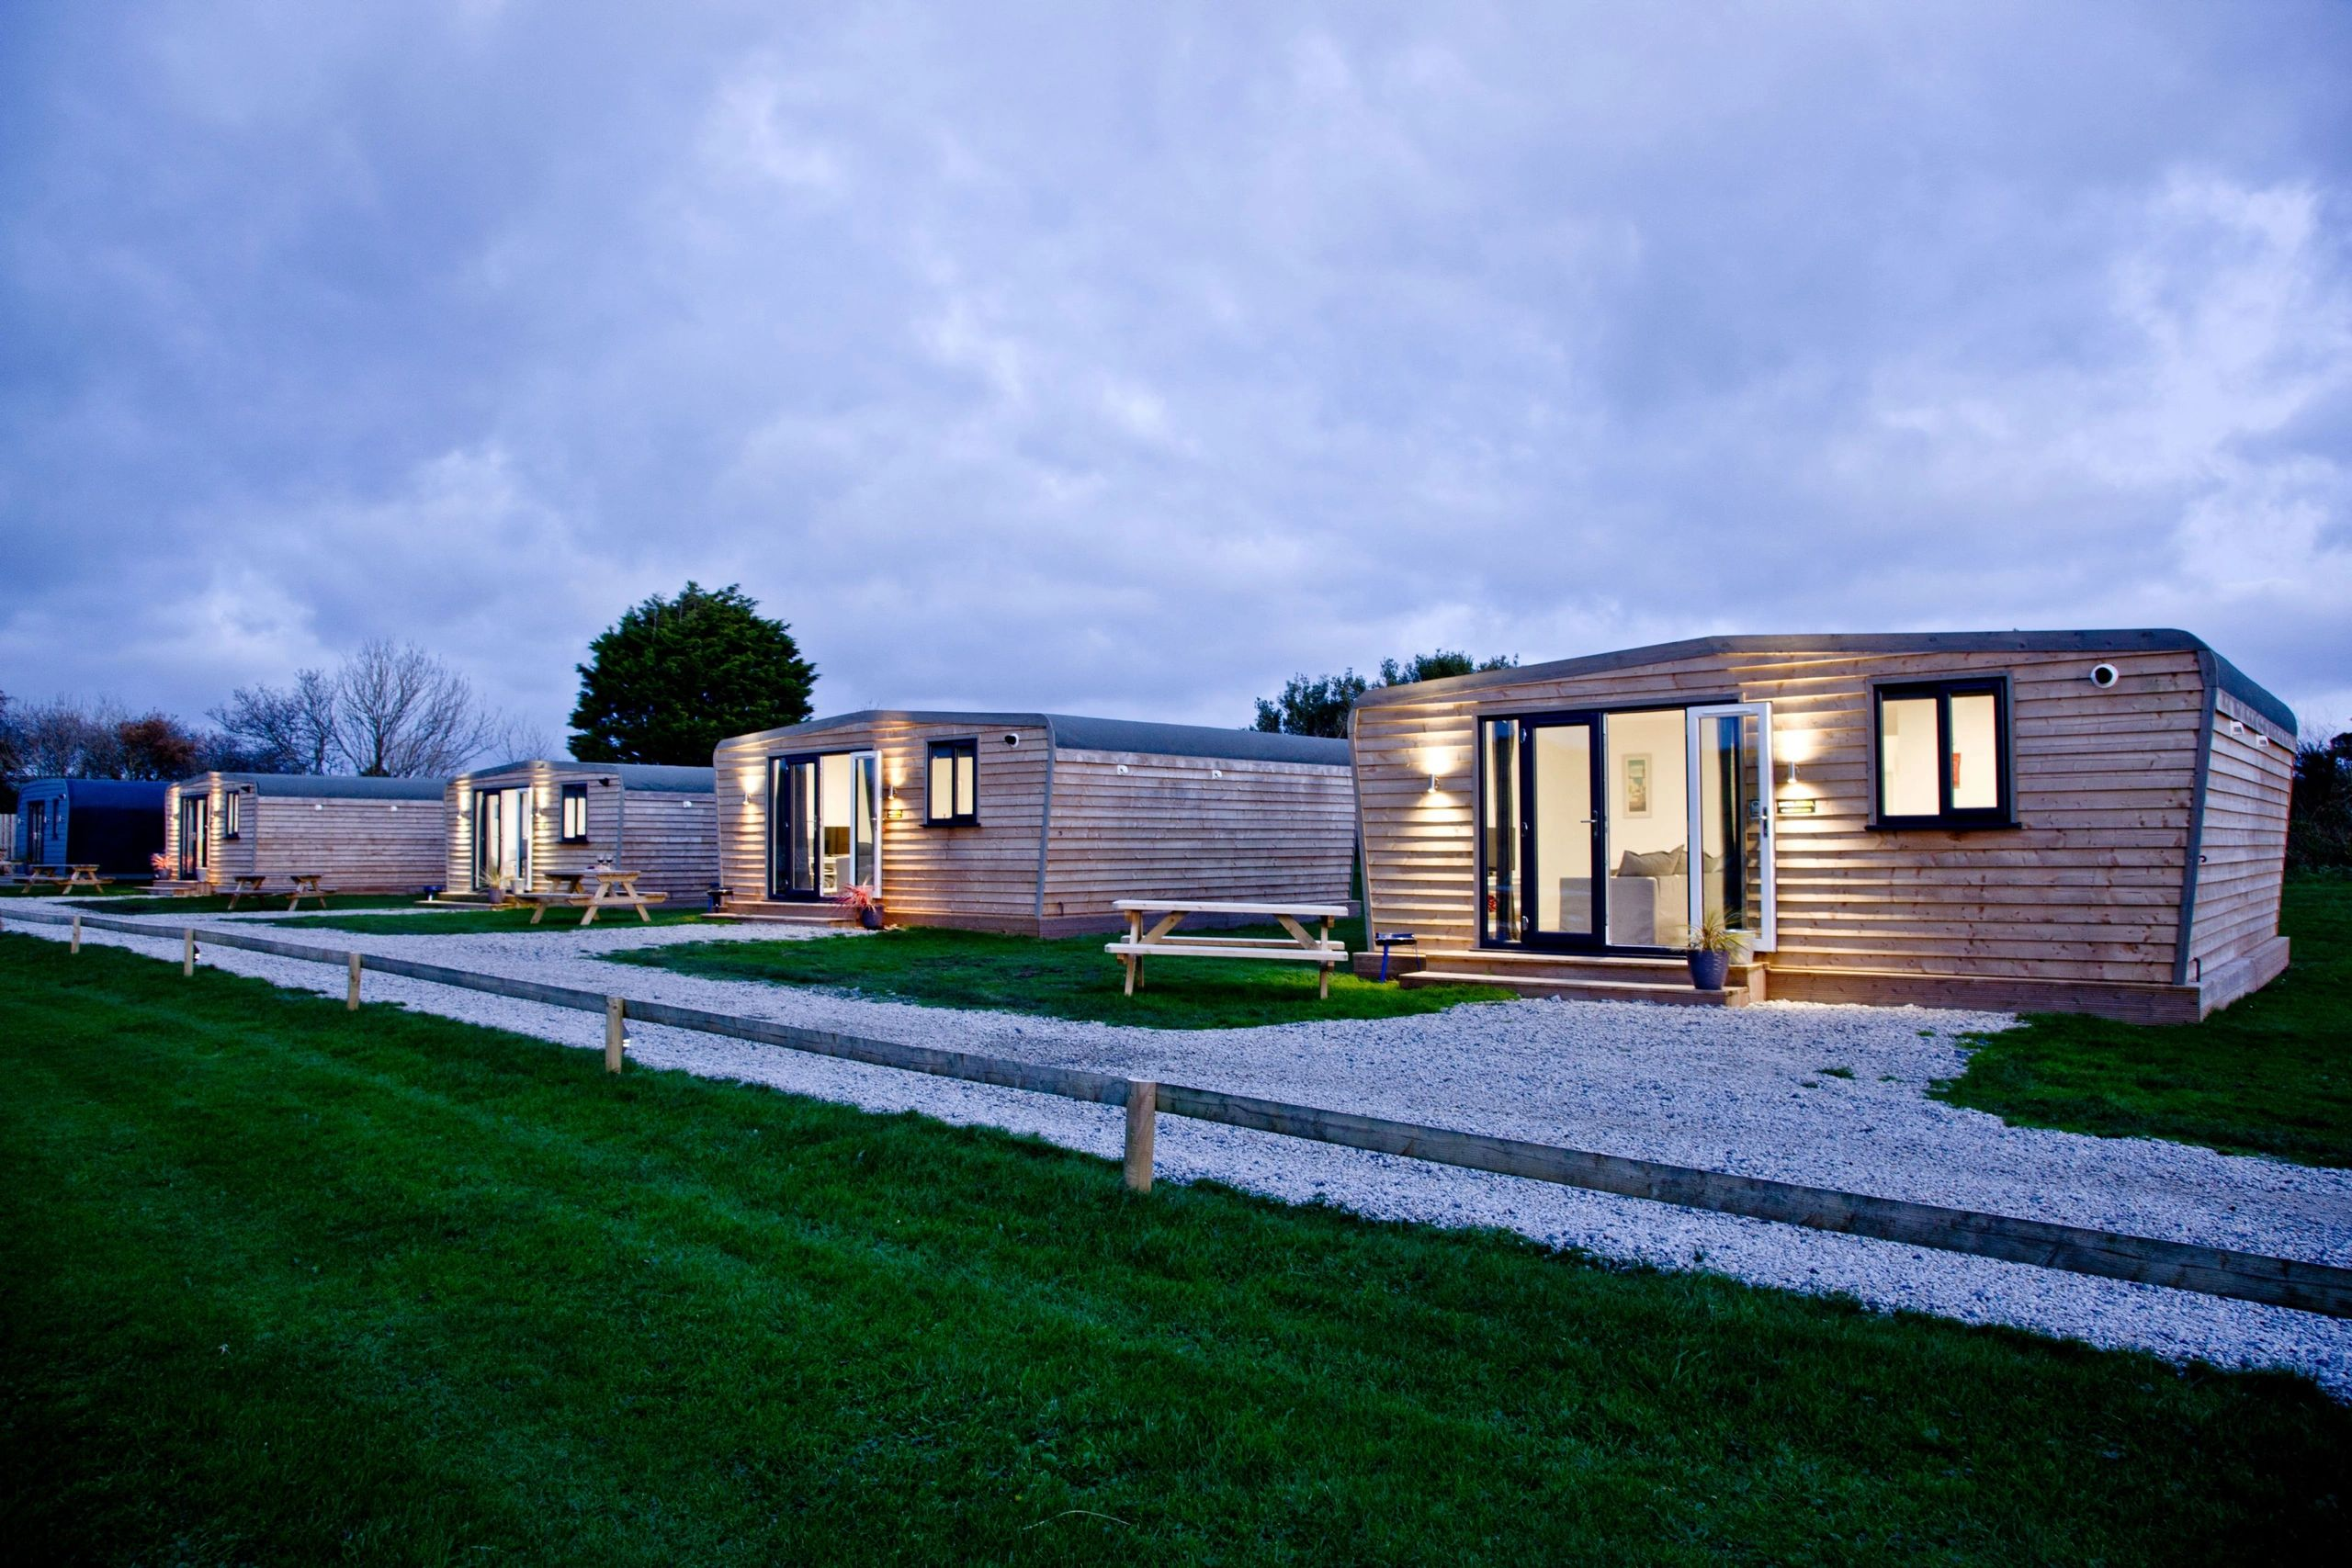 Cornwall lodges